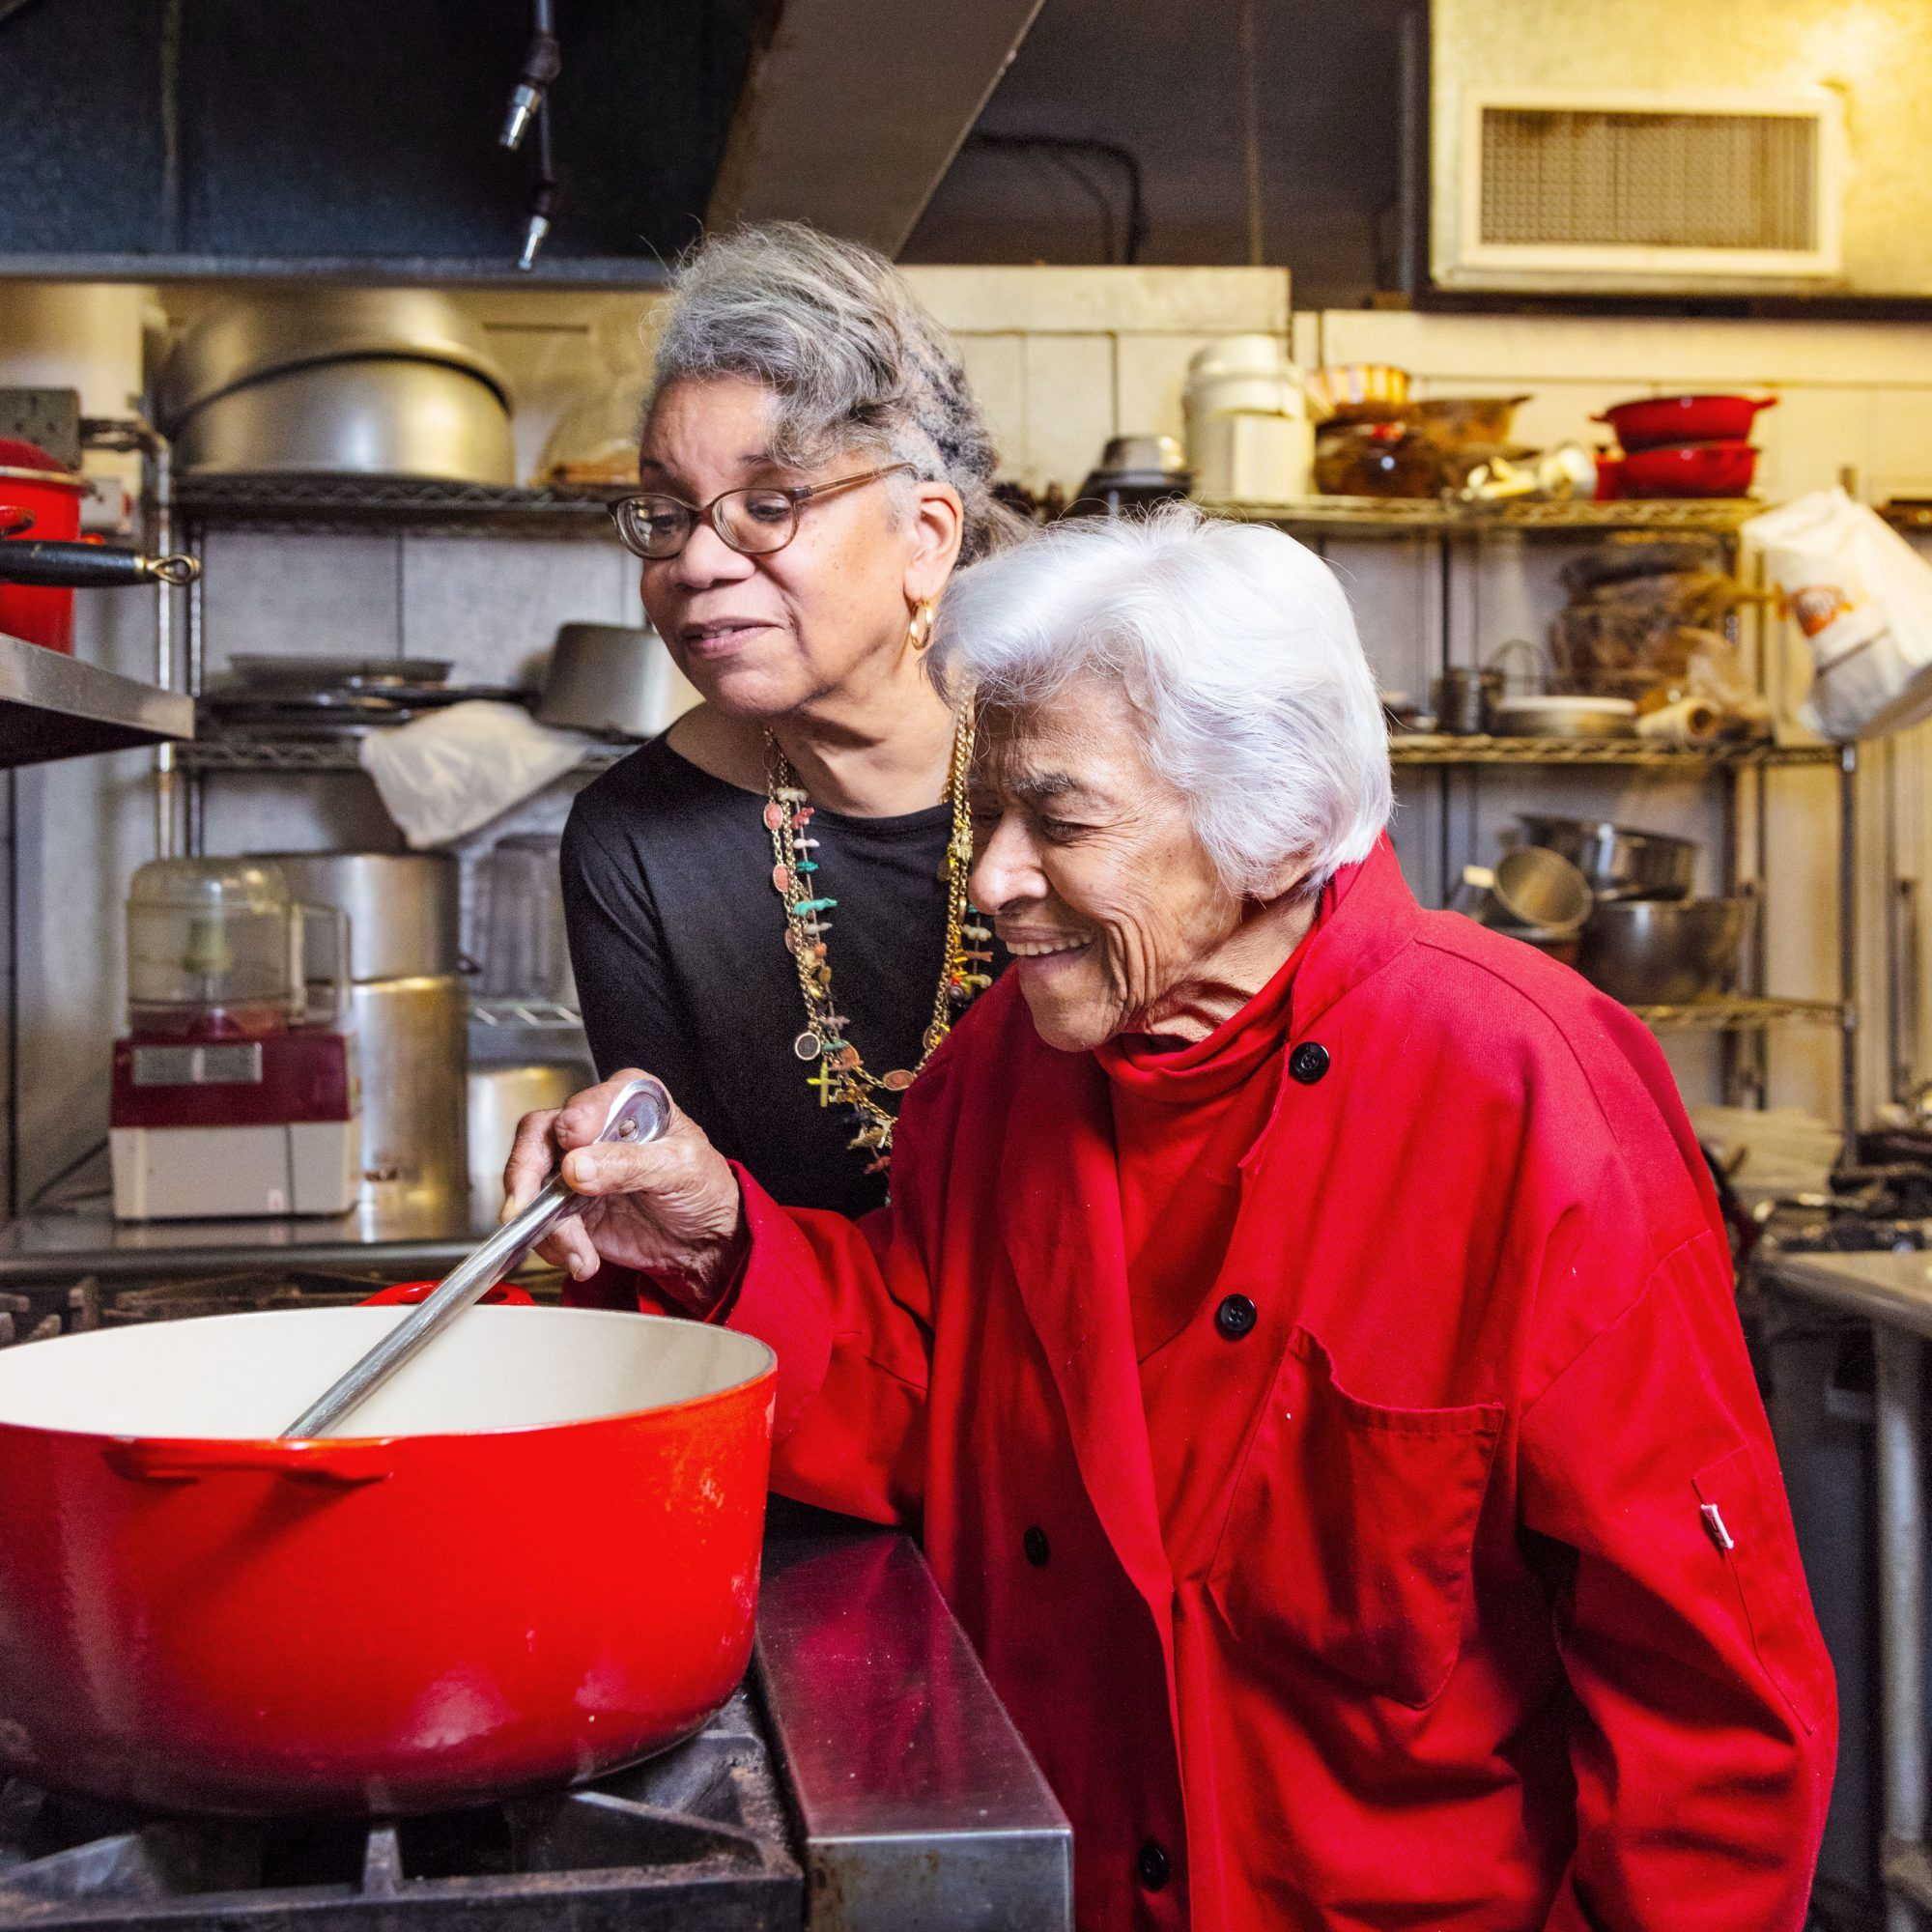 Remembering Leah Chase The Queen Of Creole Cuisine In 2020 Creole Cuisine Haitian Food Recipes Hawaiian Food